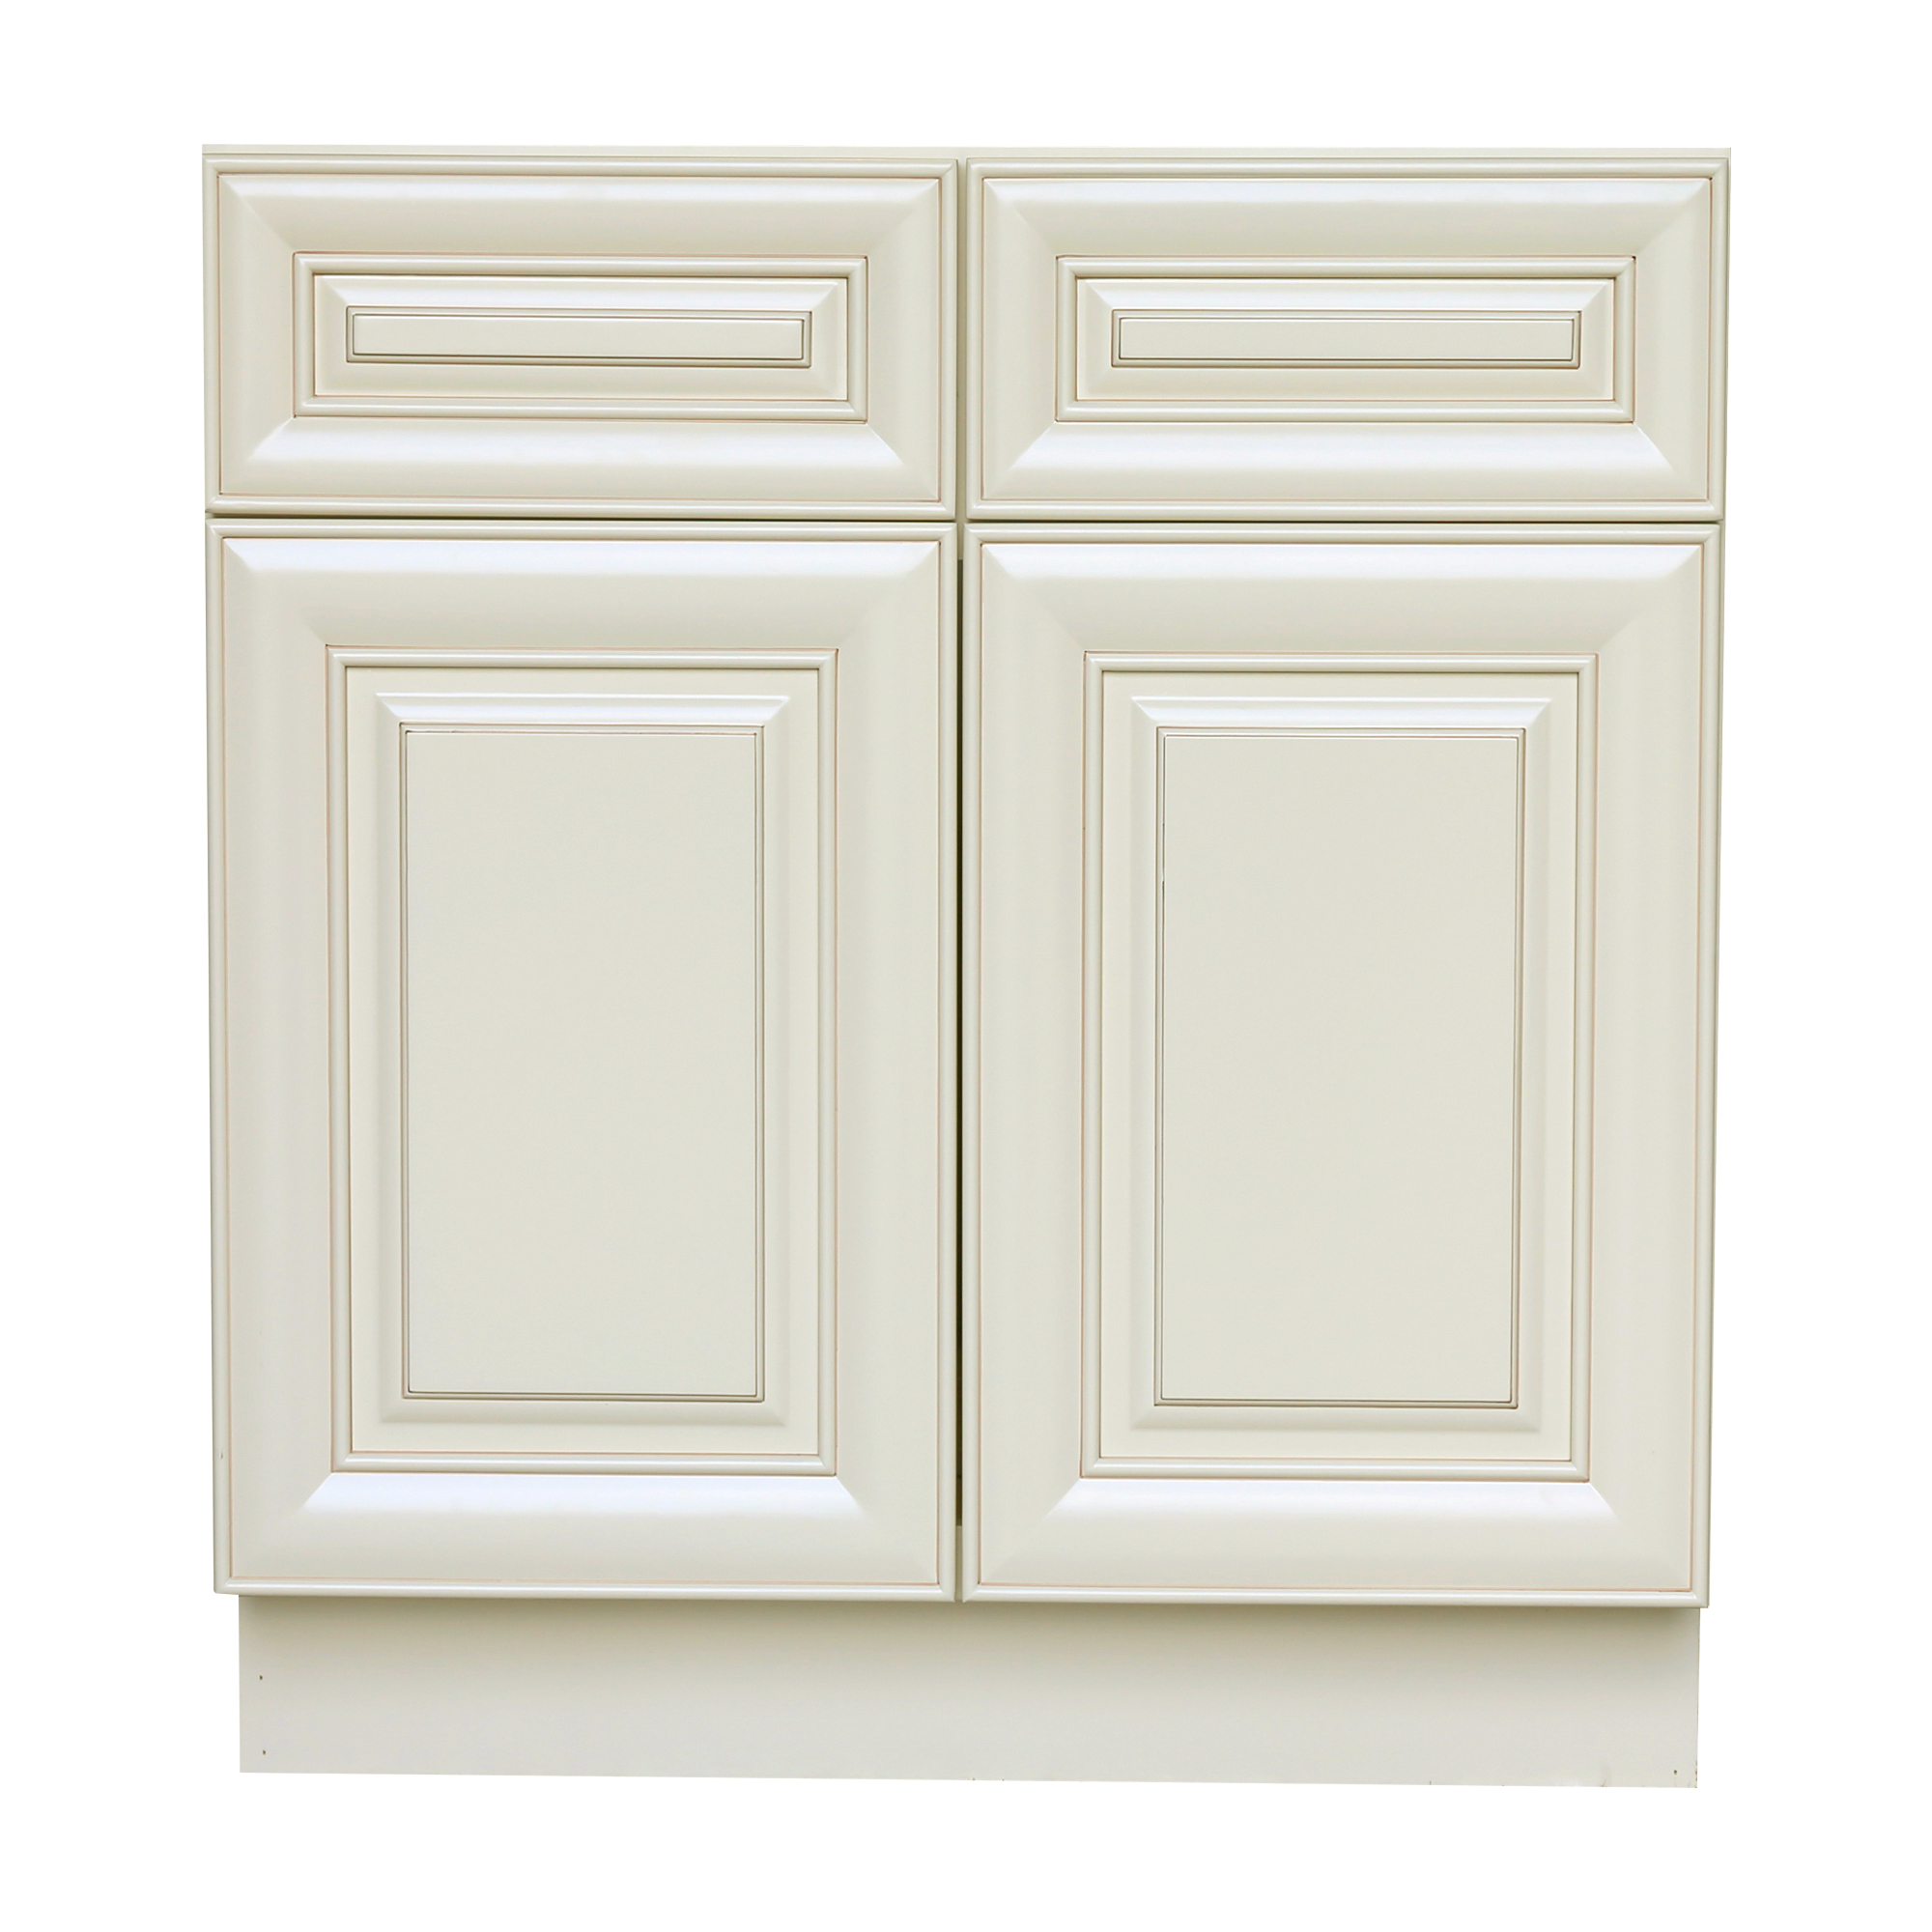 White Kitchen Cabinet Doors Only: Antique White Base Cabinet With 2 Door And 2 Drawer